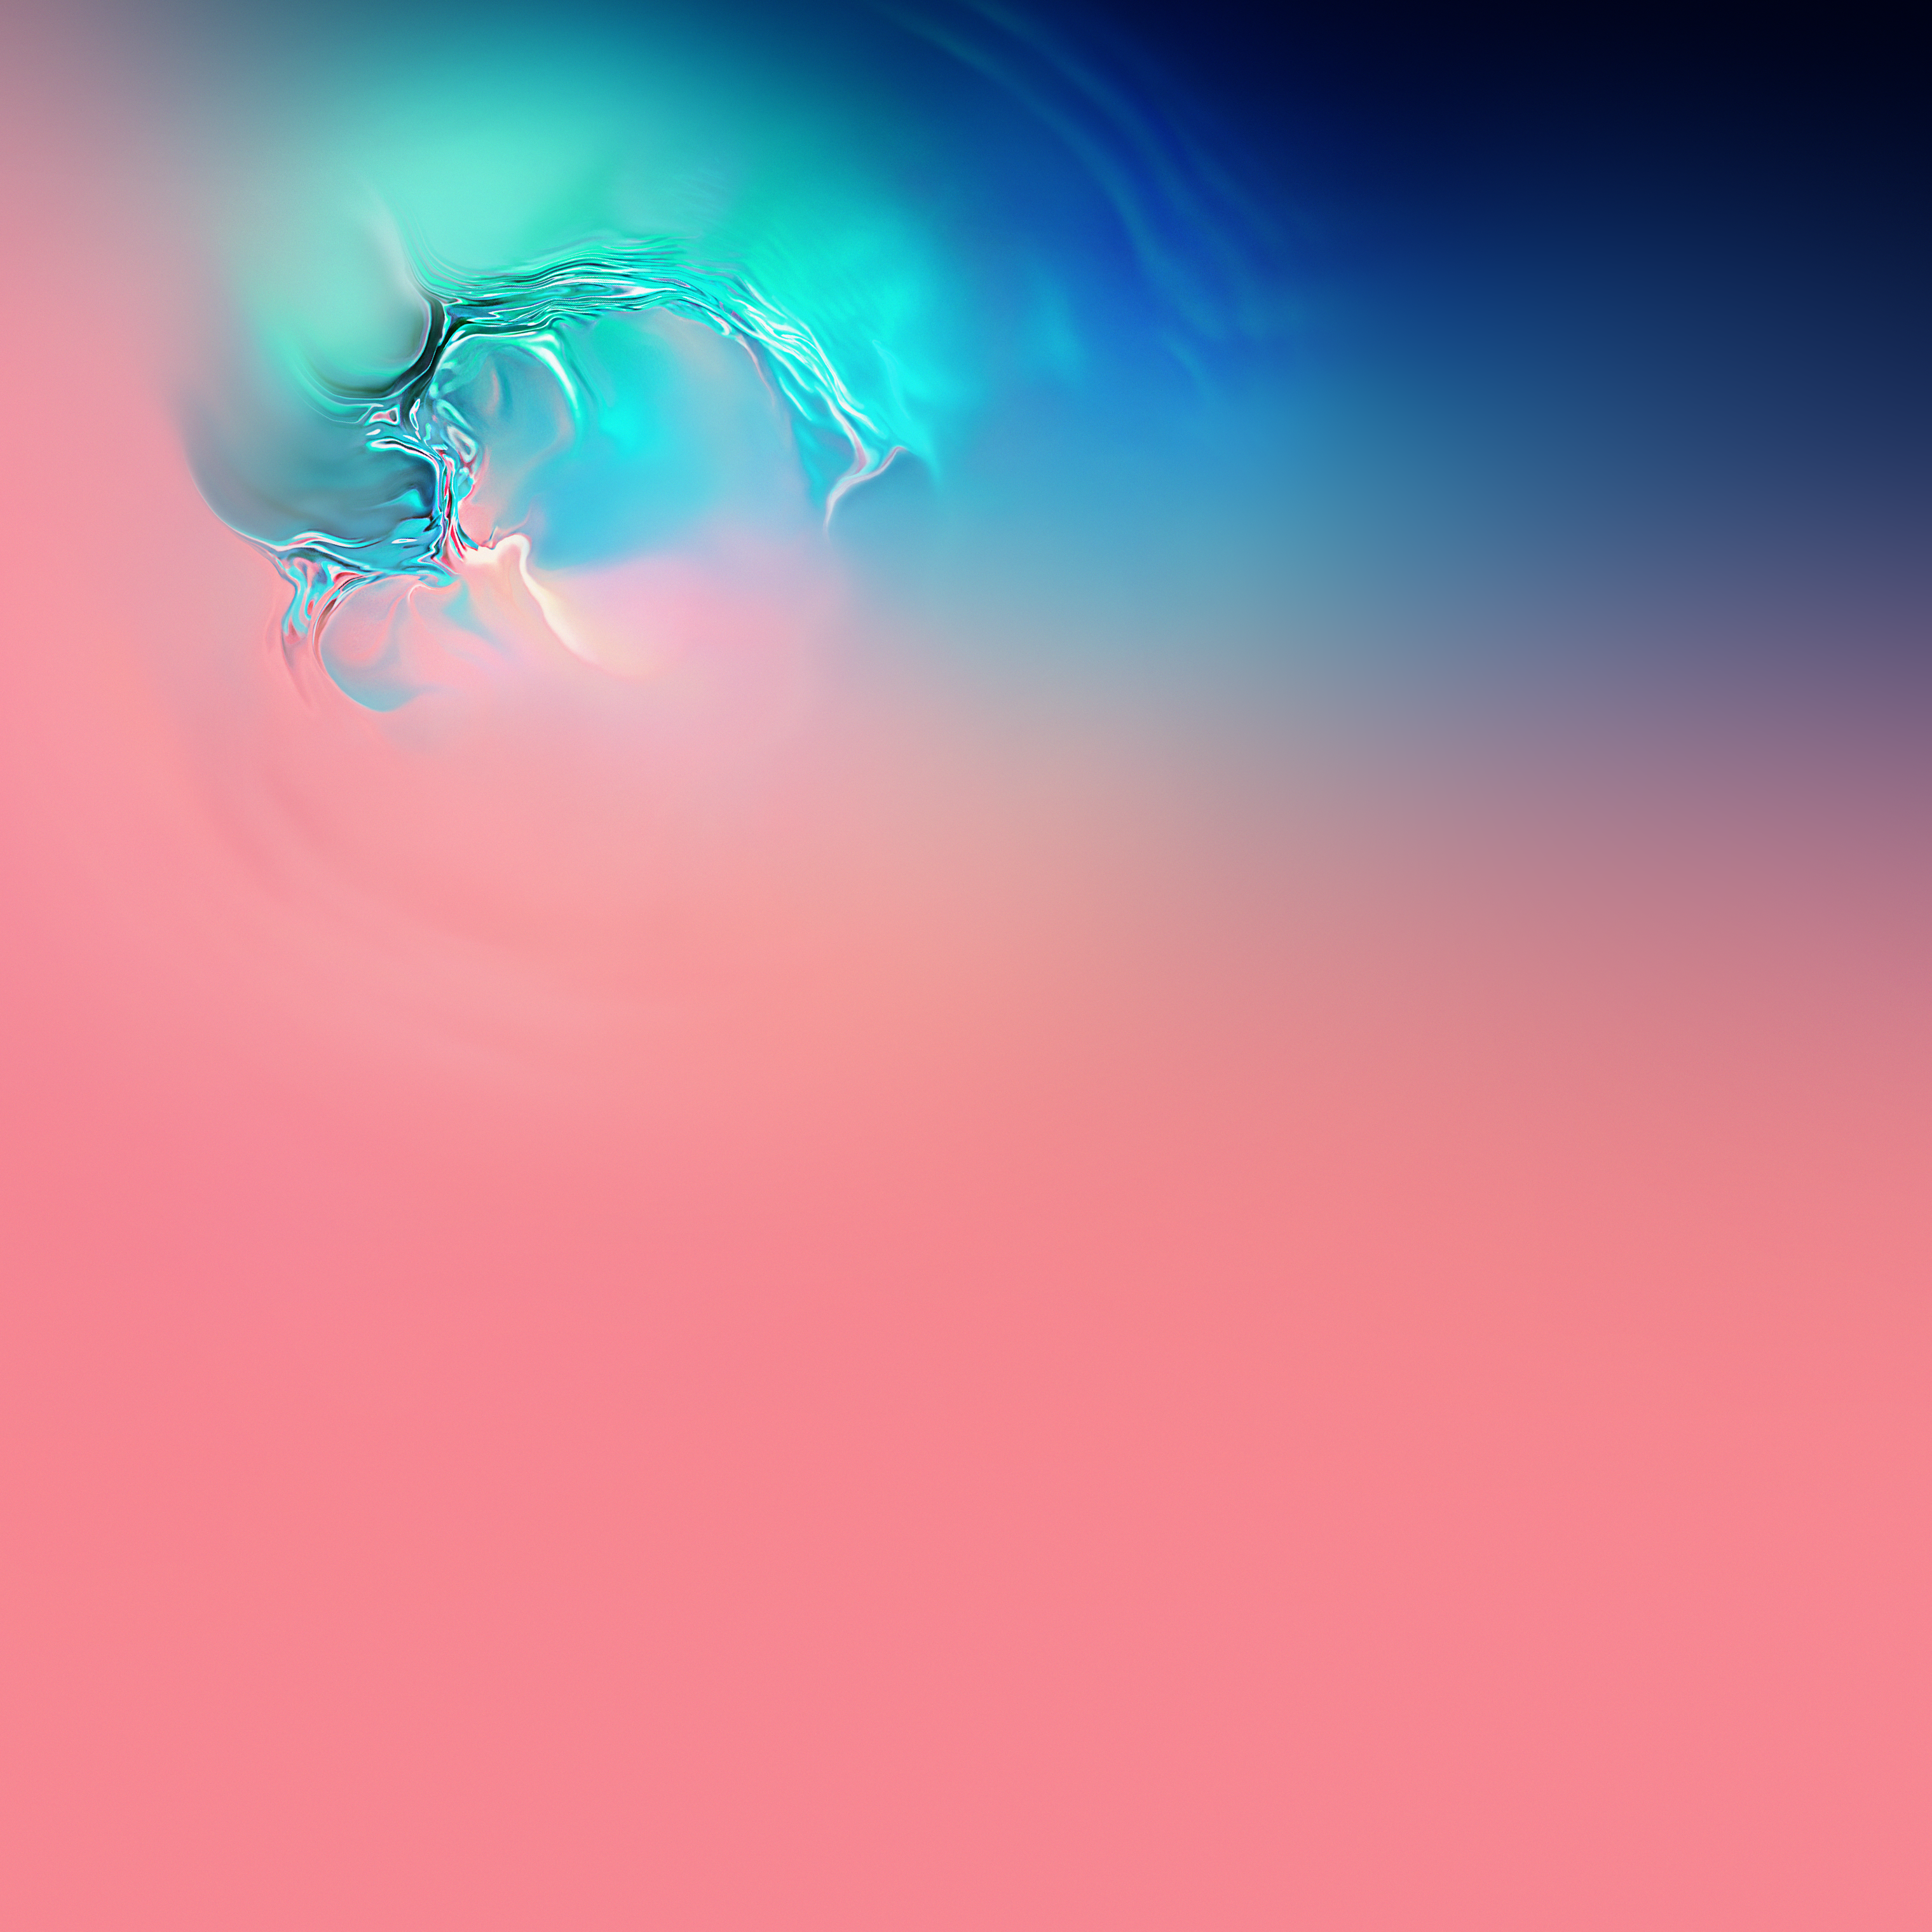 Galaxy S10 And S10 Plus Wallpaper Zollotech